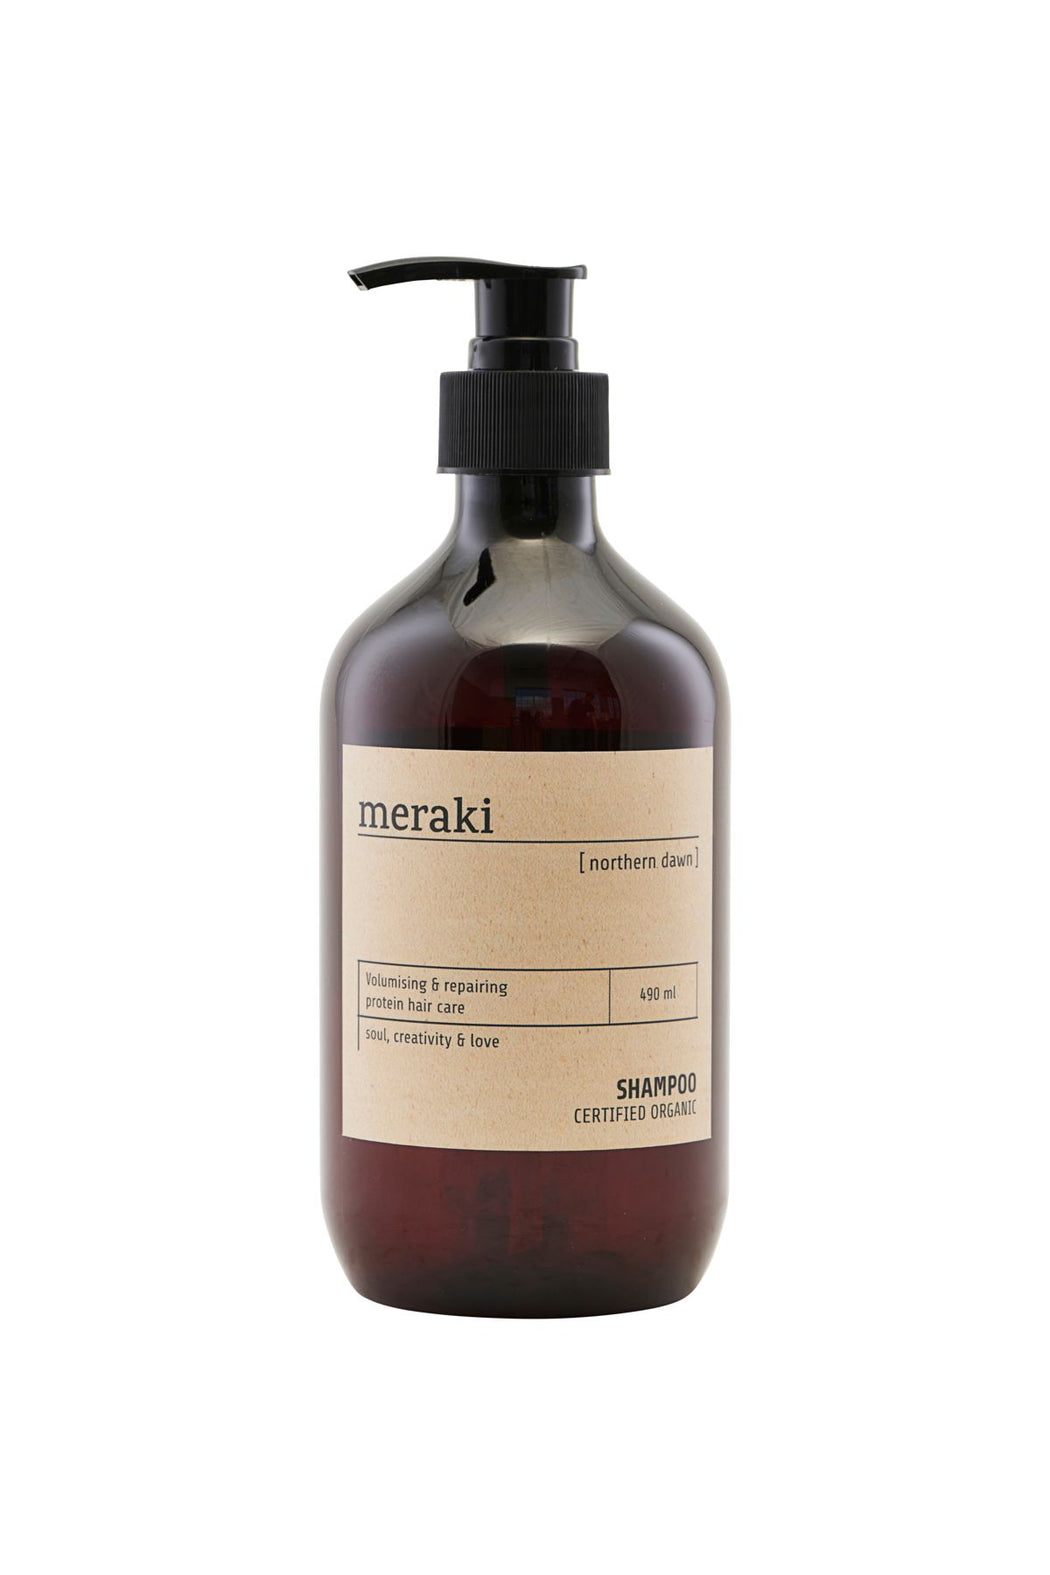 Northern Dawn Shampoo, Lifestyle, Meraki - 3LittlePicks